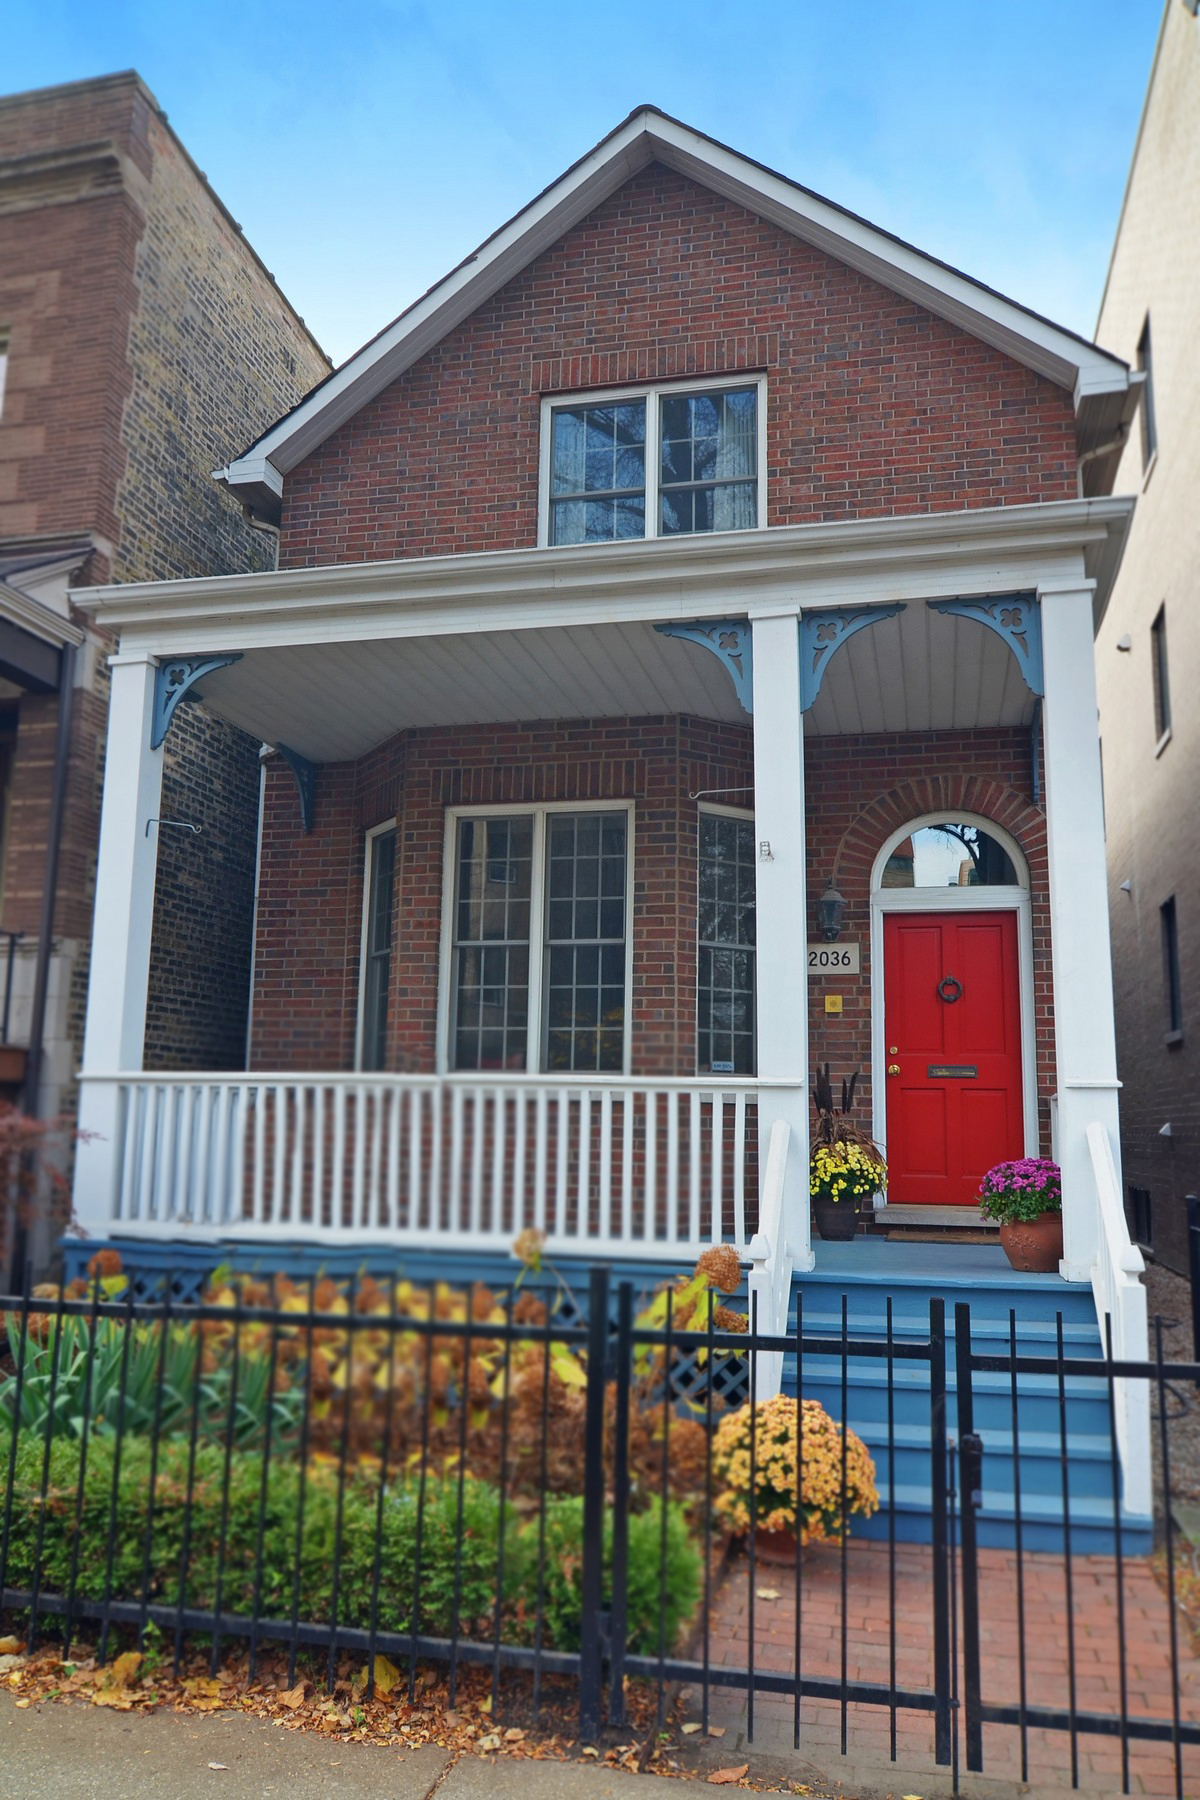 独户住宅 为 销售 在 Perfect Home in Depaul Neighborhood 2036 N Racine Avenue Lincoln Park, Chicago, 伊利诺斯州 60614 美国